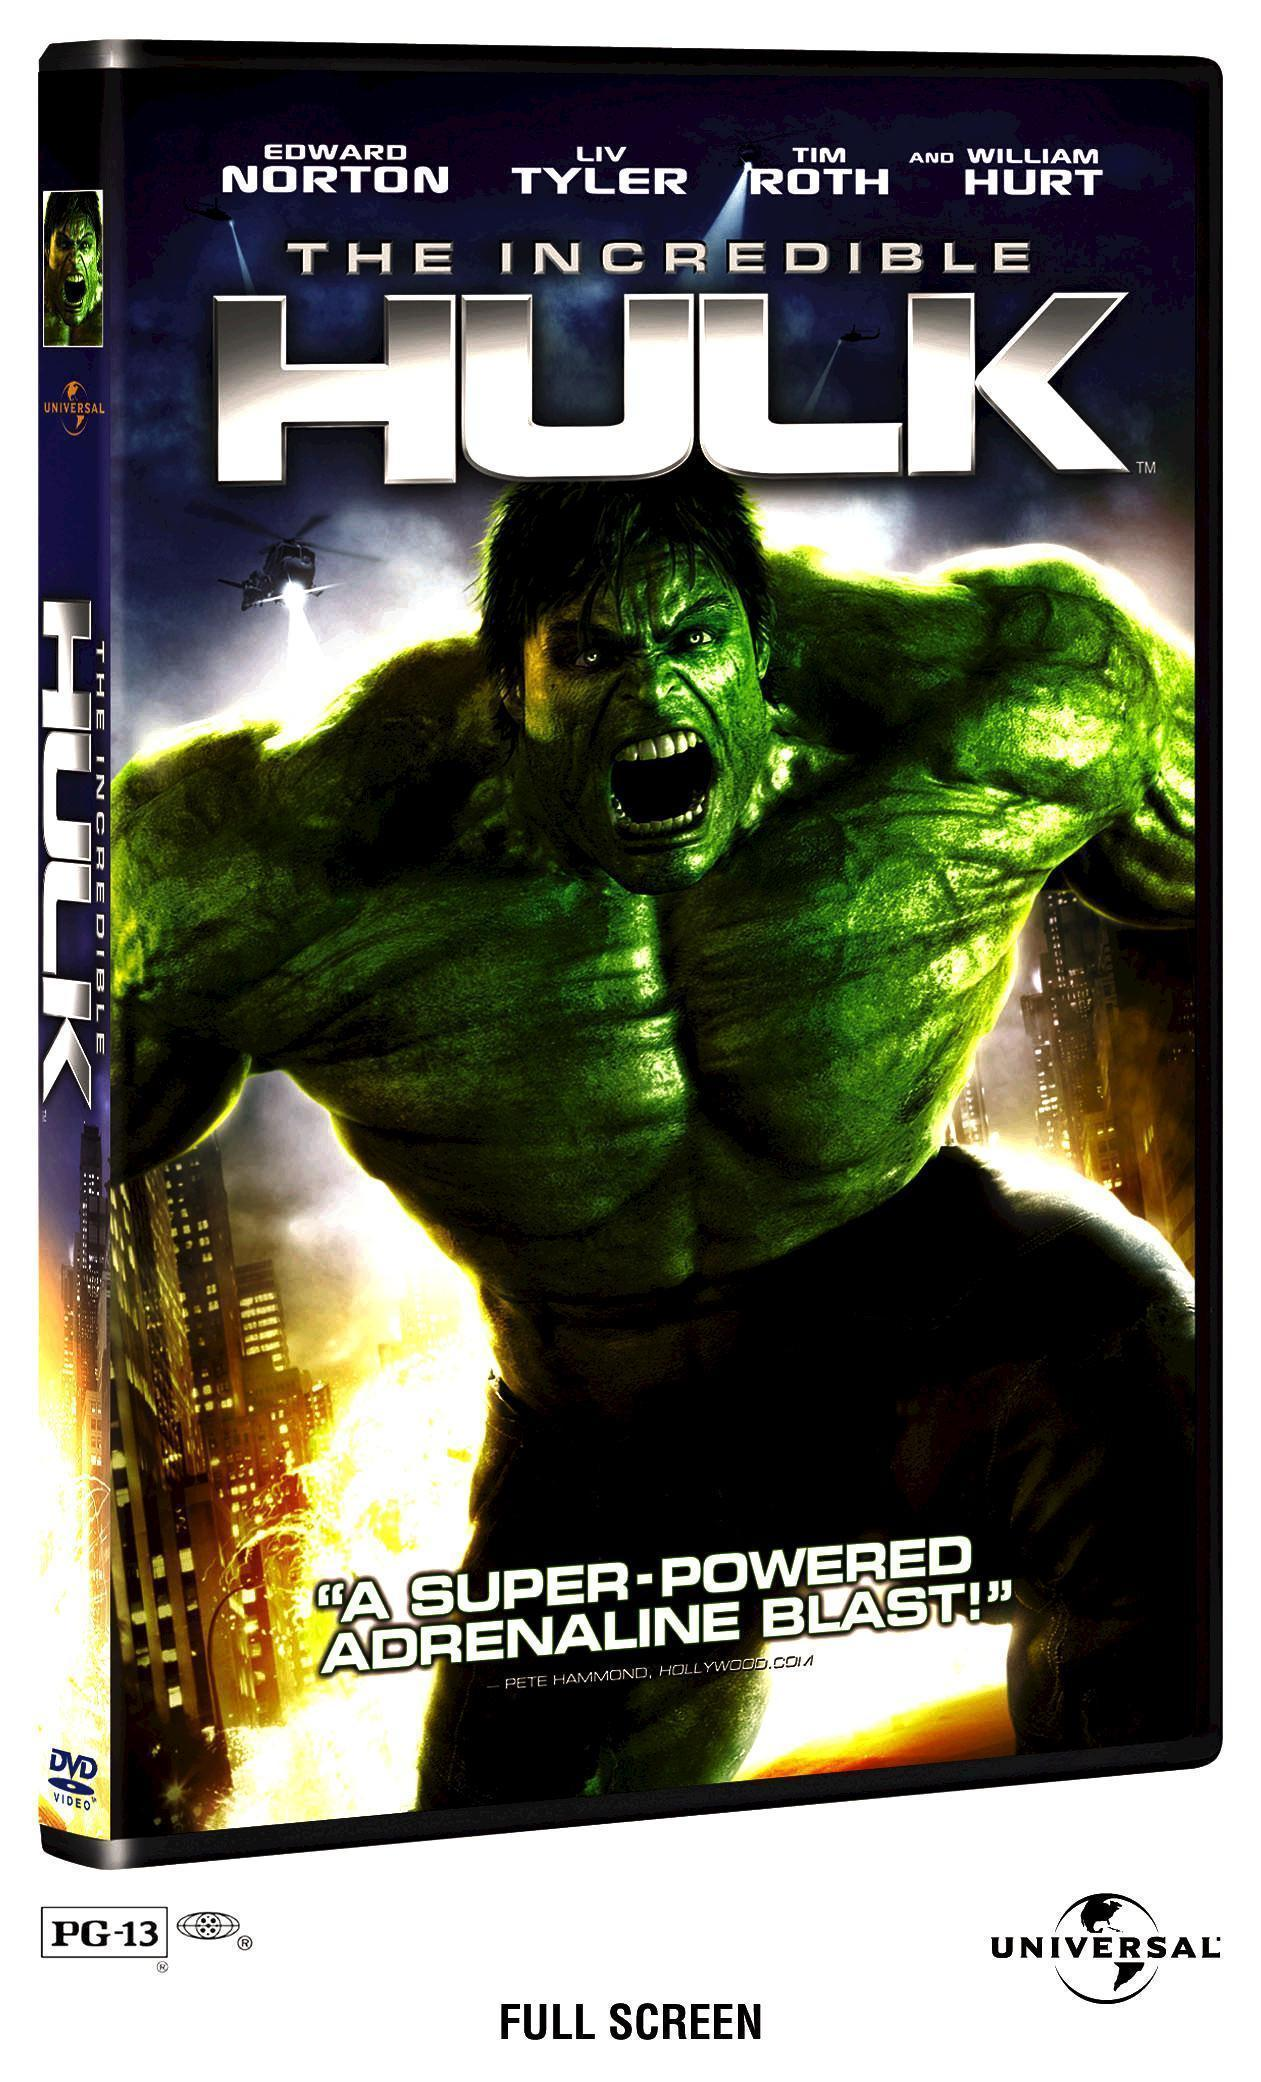 the incredible hulk review The incredible hulk h ulk smash yes hulk smash yes smash big hulk smash smash cars the incredible hulk reviews share on facebook share on twitter.